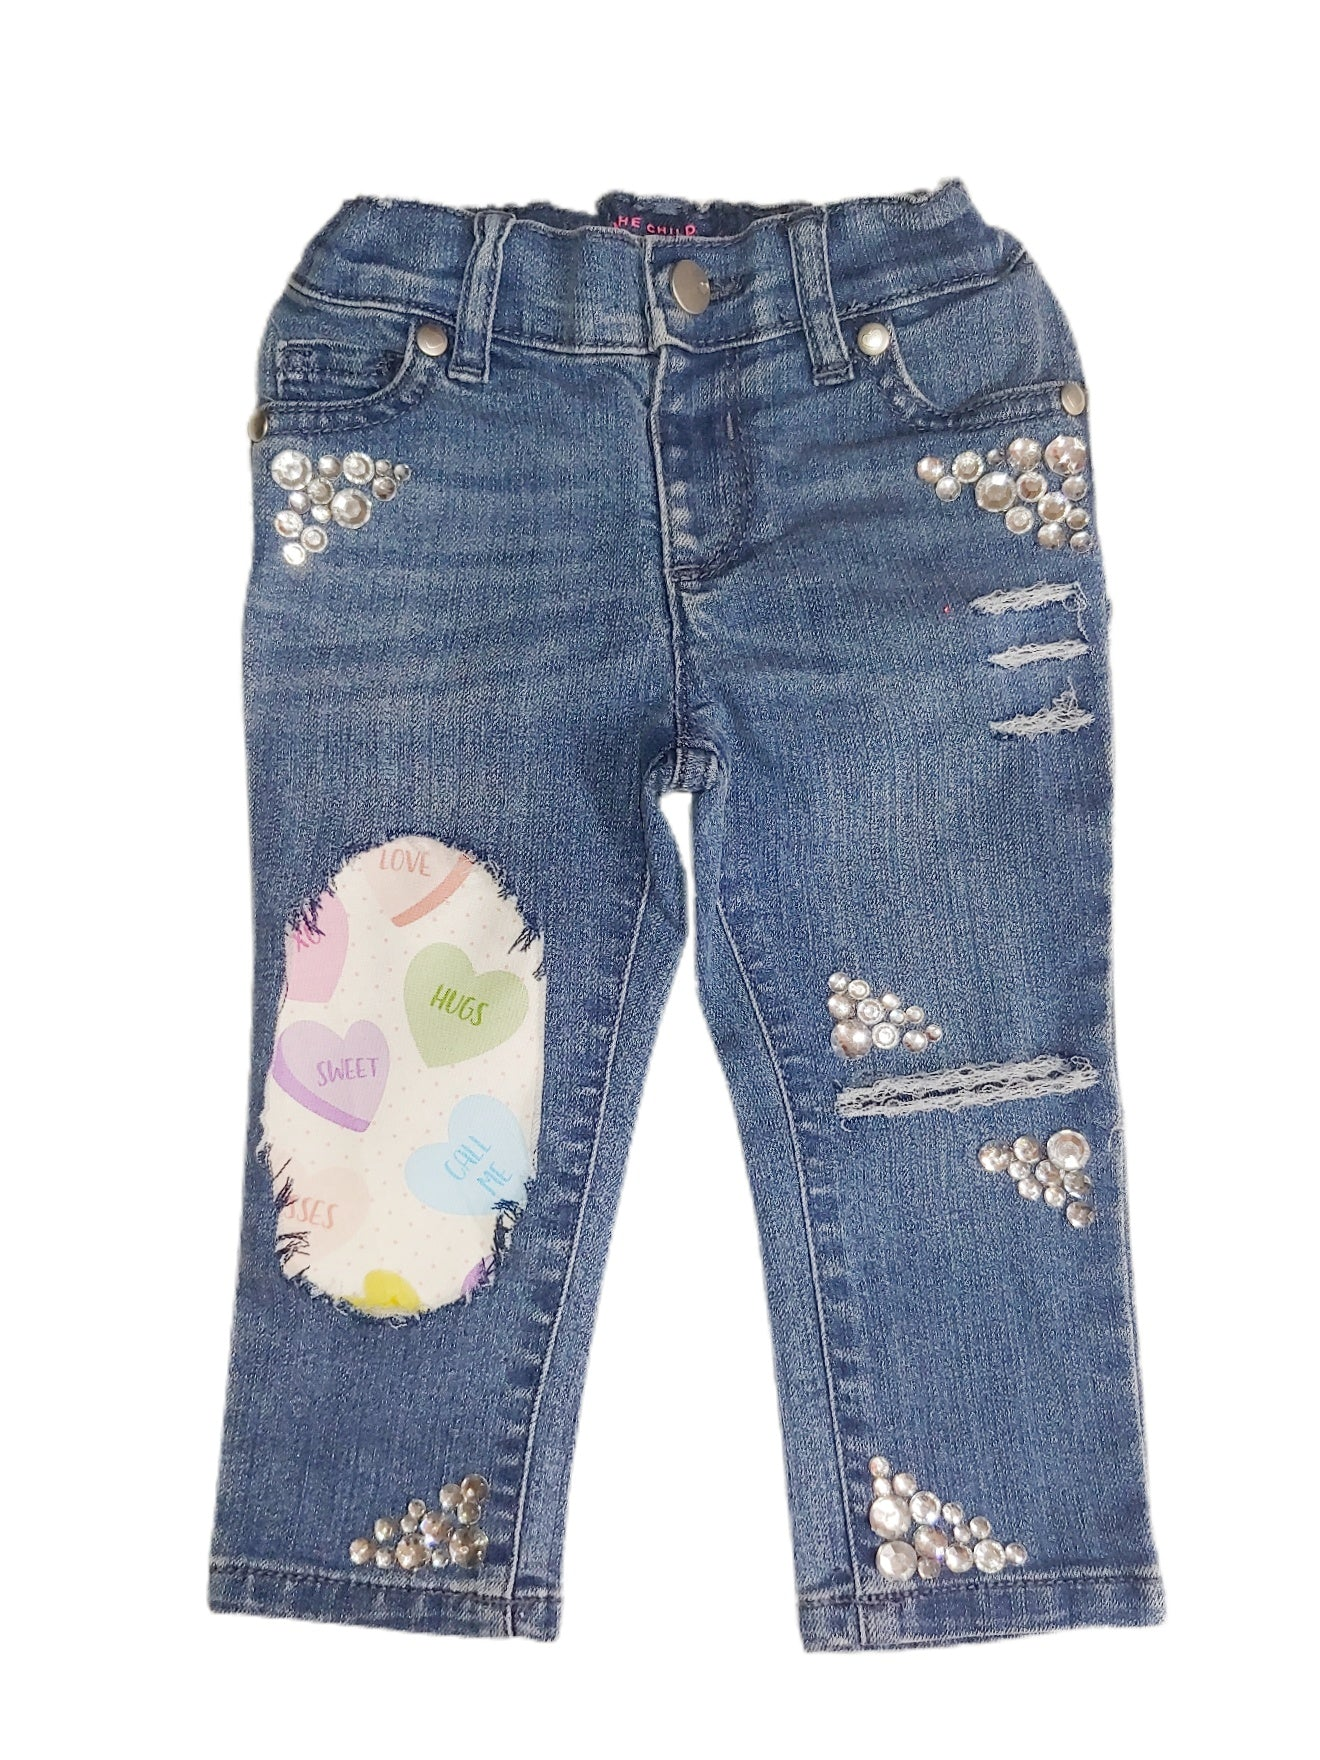 Conversation Hearts Distressed Jeans